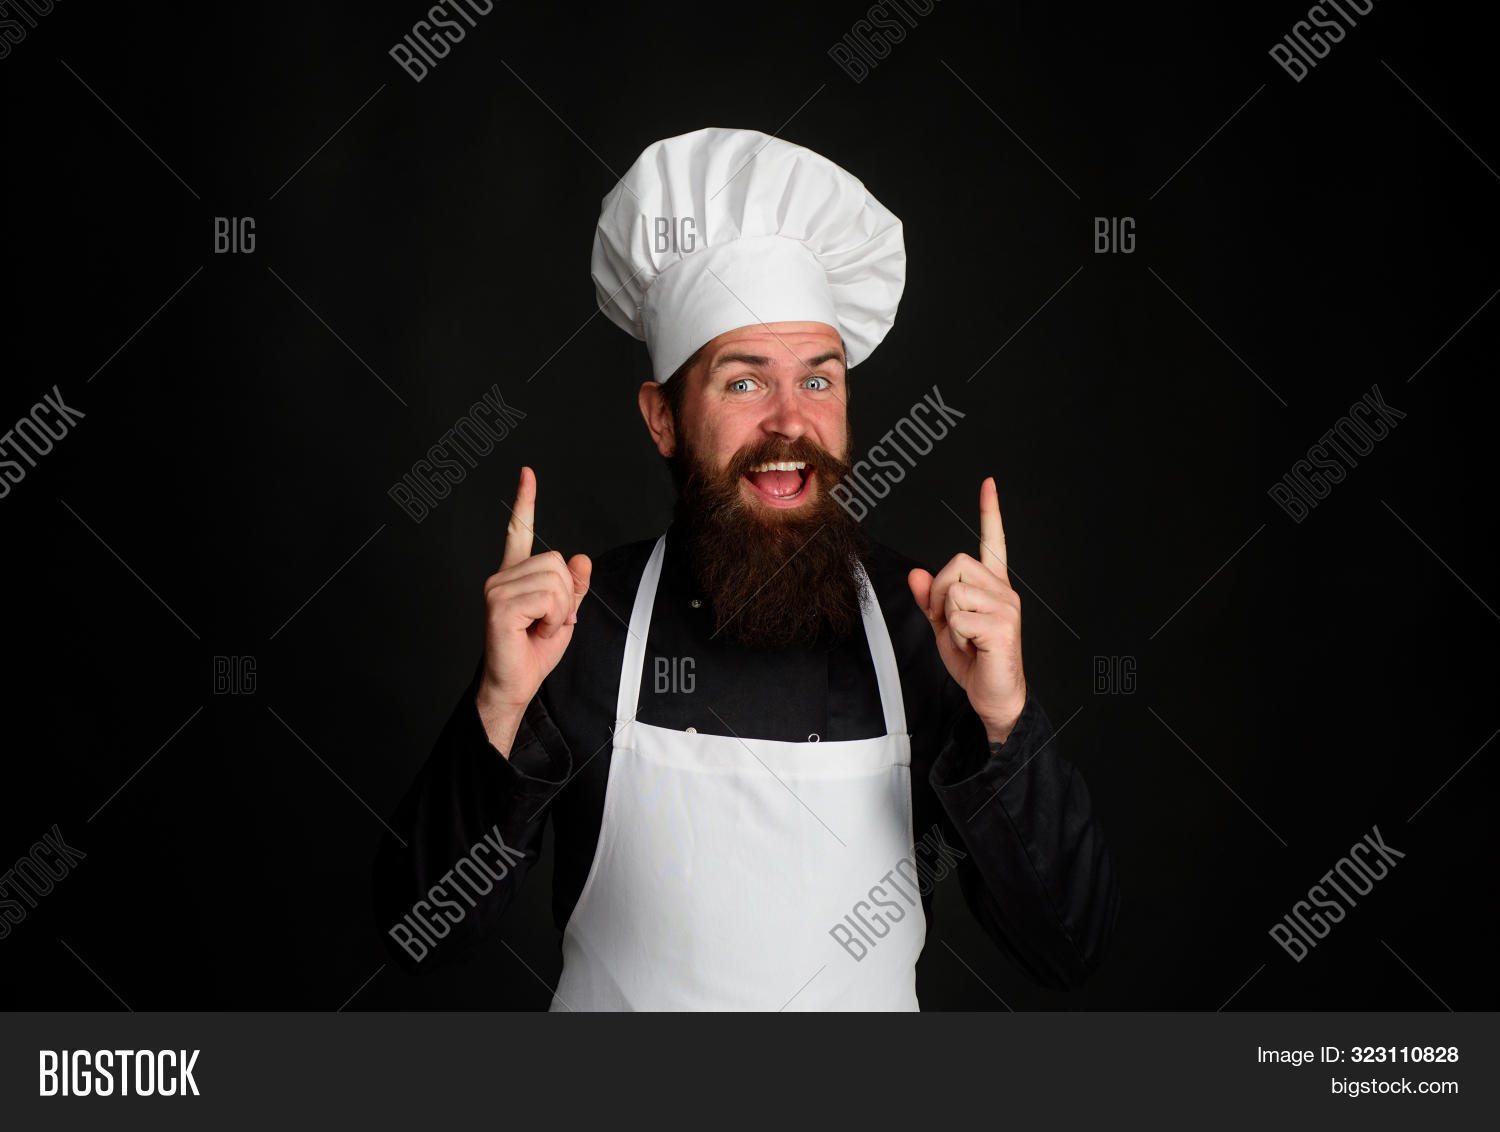 approval,apron,bake,baking,bearded,business,cafe,cap,career,catering,chef,chief,cooking,cuisine,culinary,delicious,diet,dinner,dish,eat,expression,food,fresh,gastronomy,gesture,gourmet,hand,hat,healthy,industry,ingredient,job,kitchen,male,man,meal,mustache,nutrition,preparation,profession,recipe,restaurant,serving,staff,tasty,uniform,vegetarian,work,worker,workwear